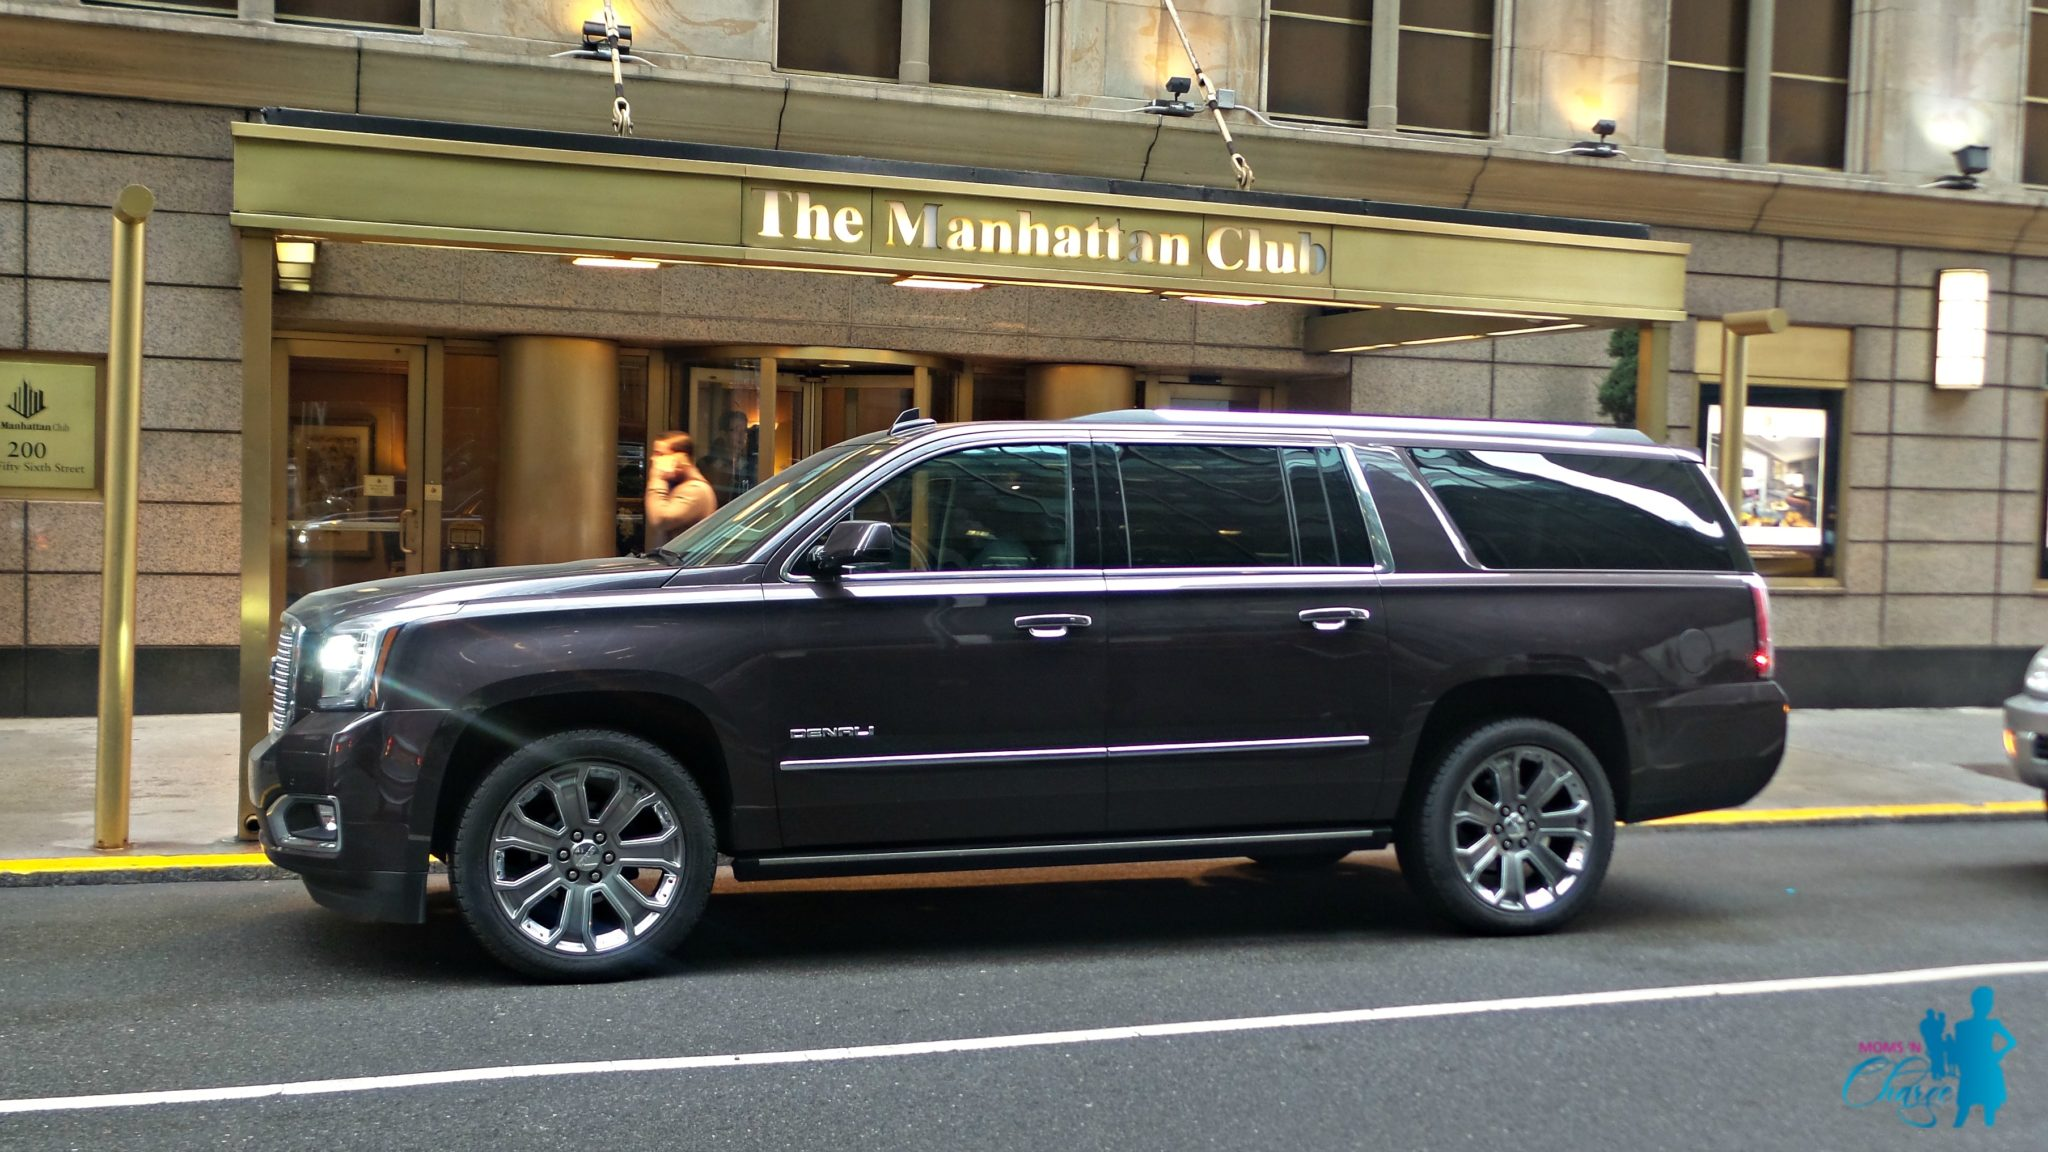 2015 Yukon Denali Xl Review The New Face Of Family Luxury